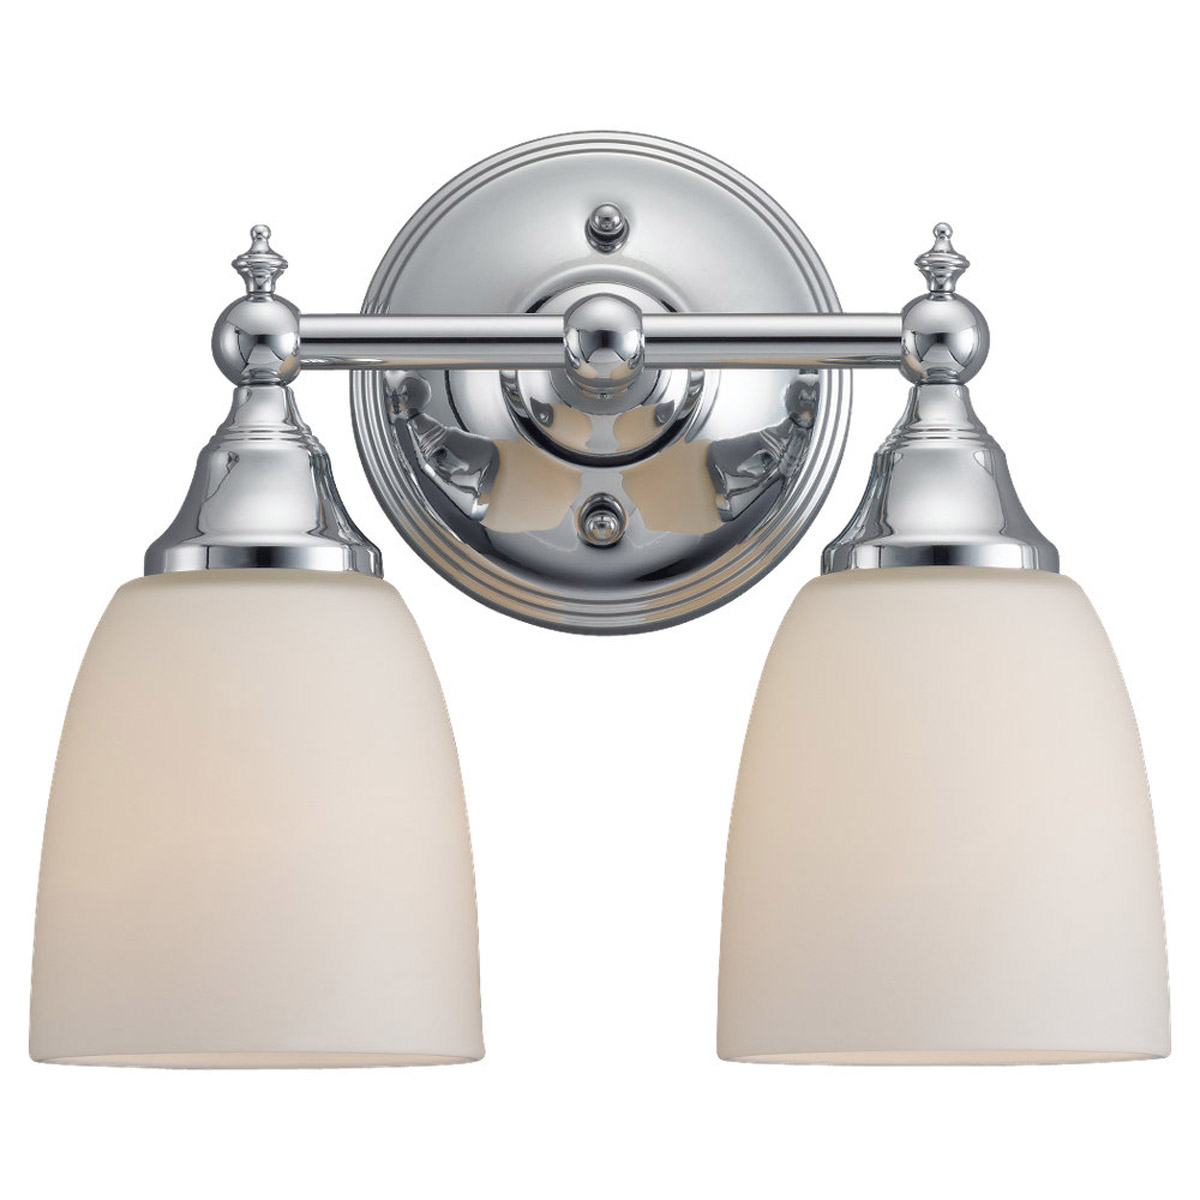 Sea Gull Lighting Finitude 2 Light Bath Vanity in Chrome 44616-05 photo